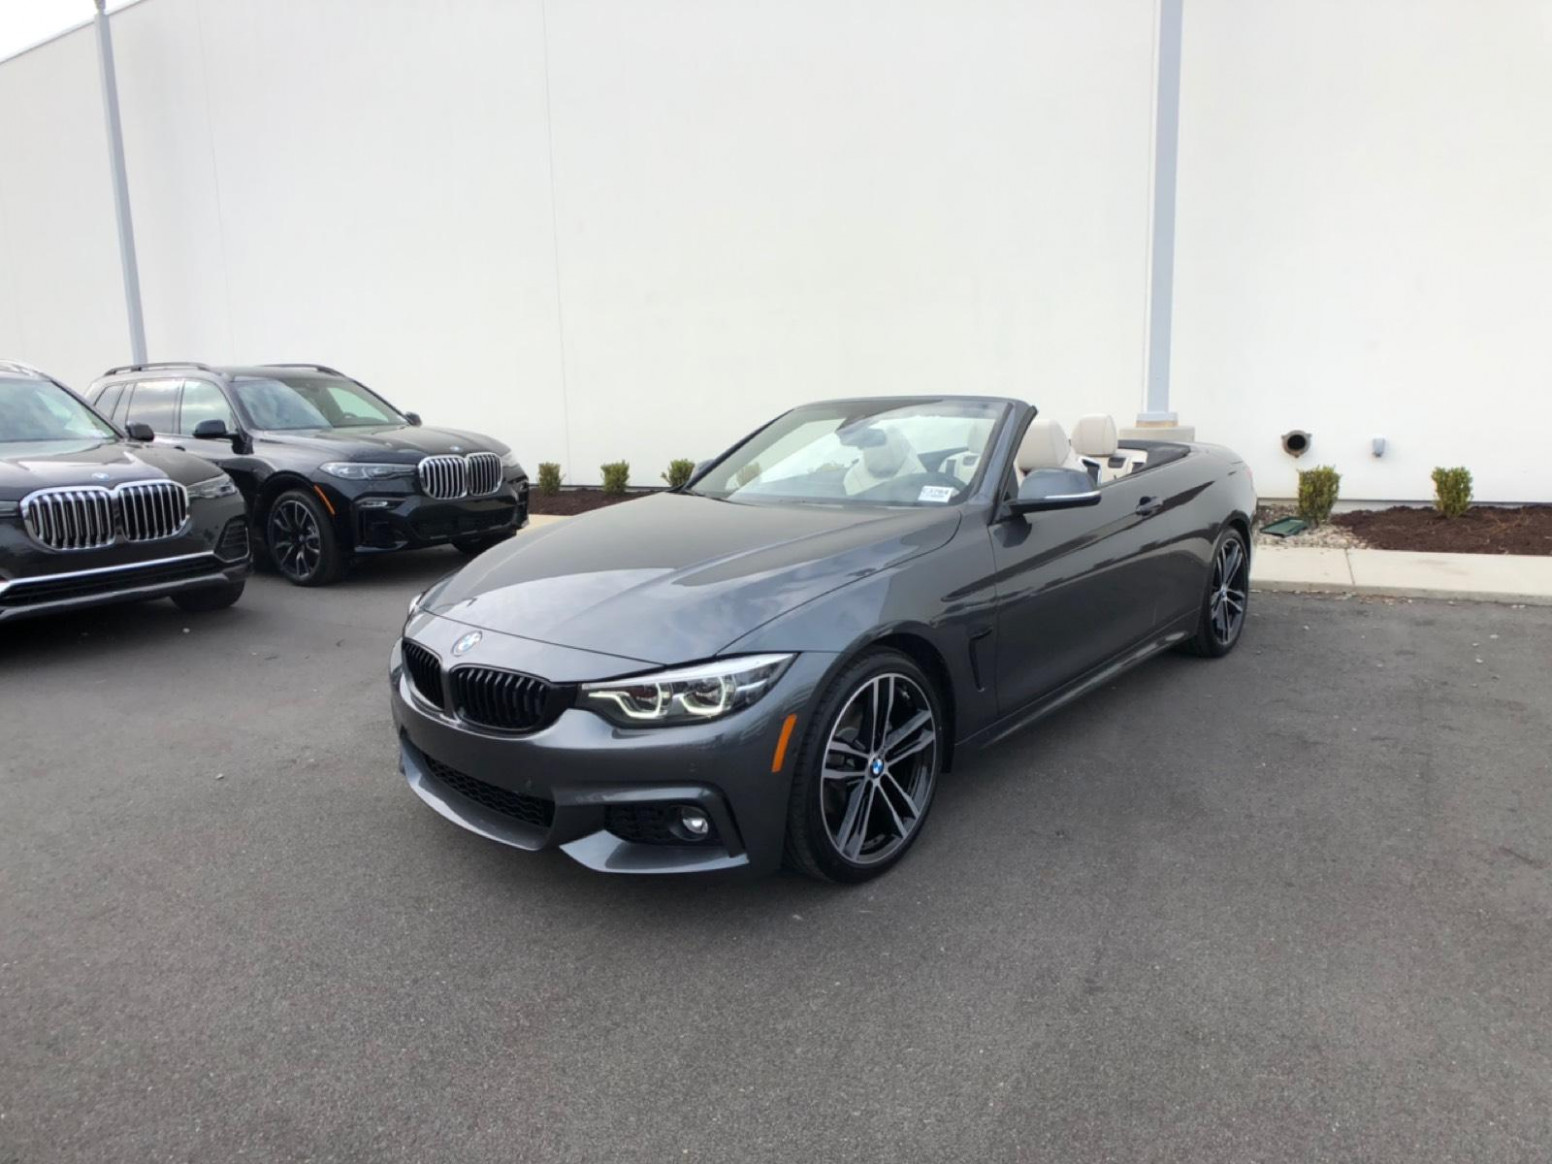 New 9 BMW 9i Convertible RWD Convertible - 2020 bmw convertible for sale